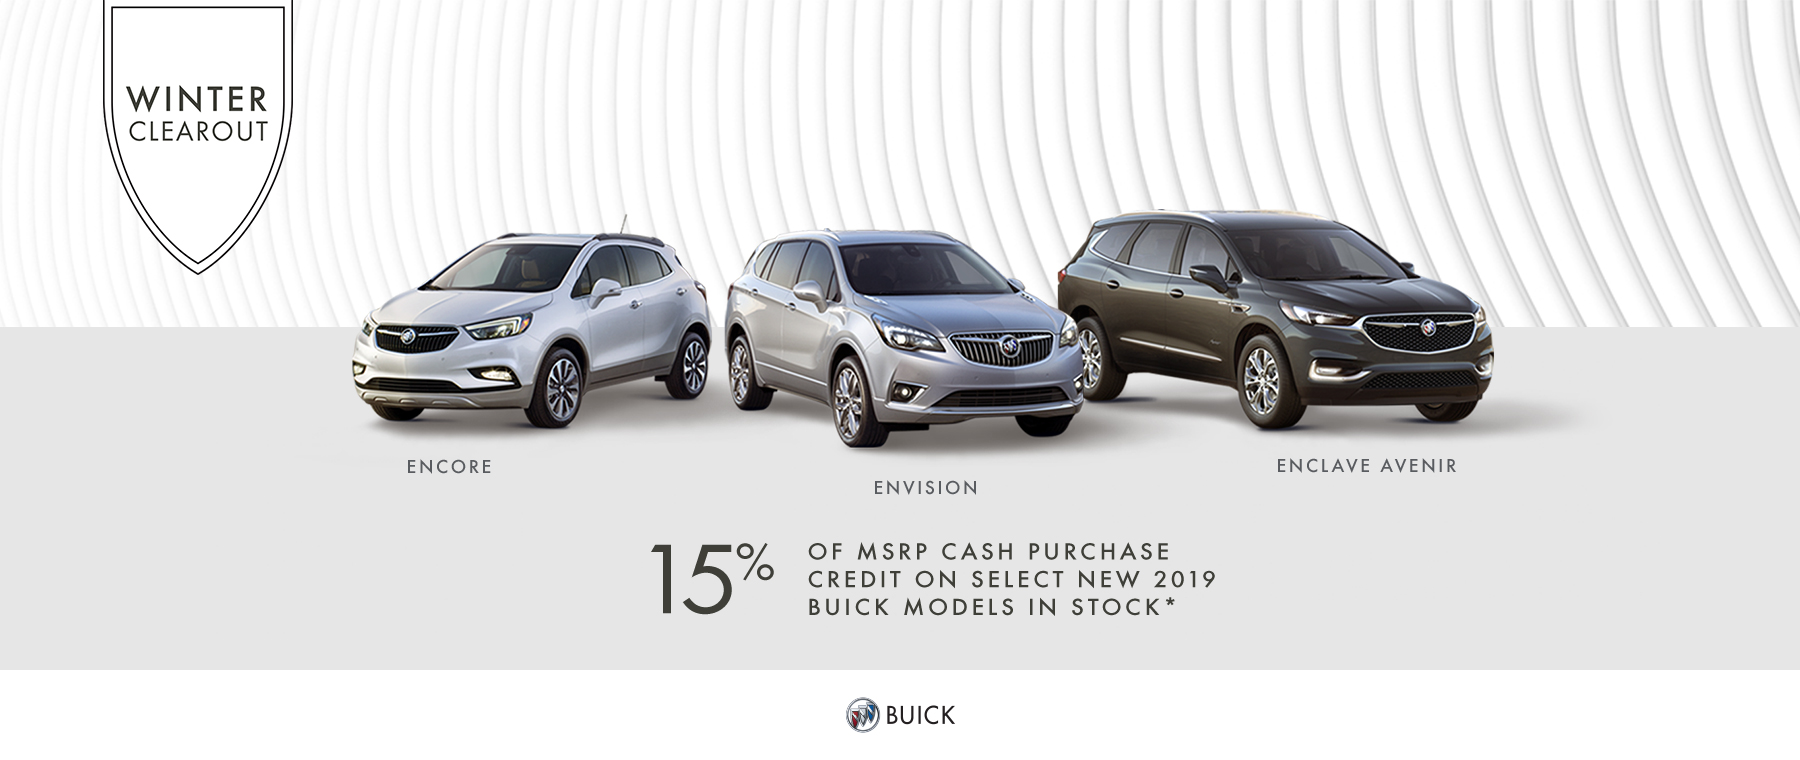 Winter Clearout 2019 Buick Multi-line